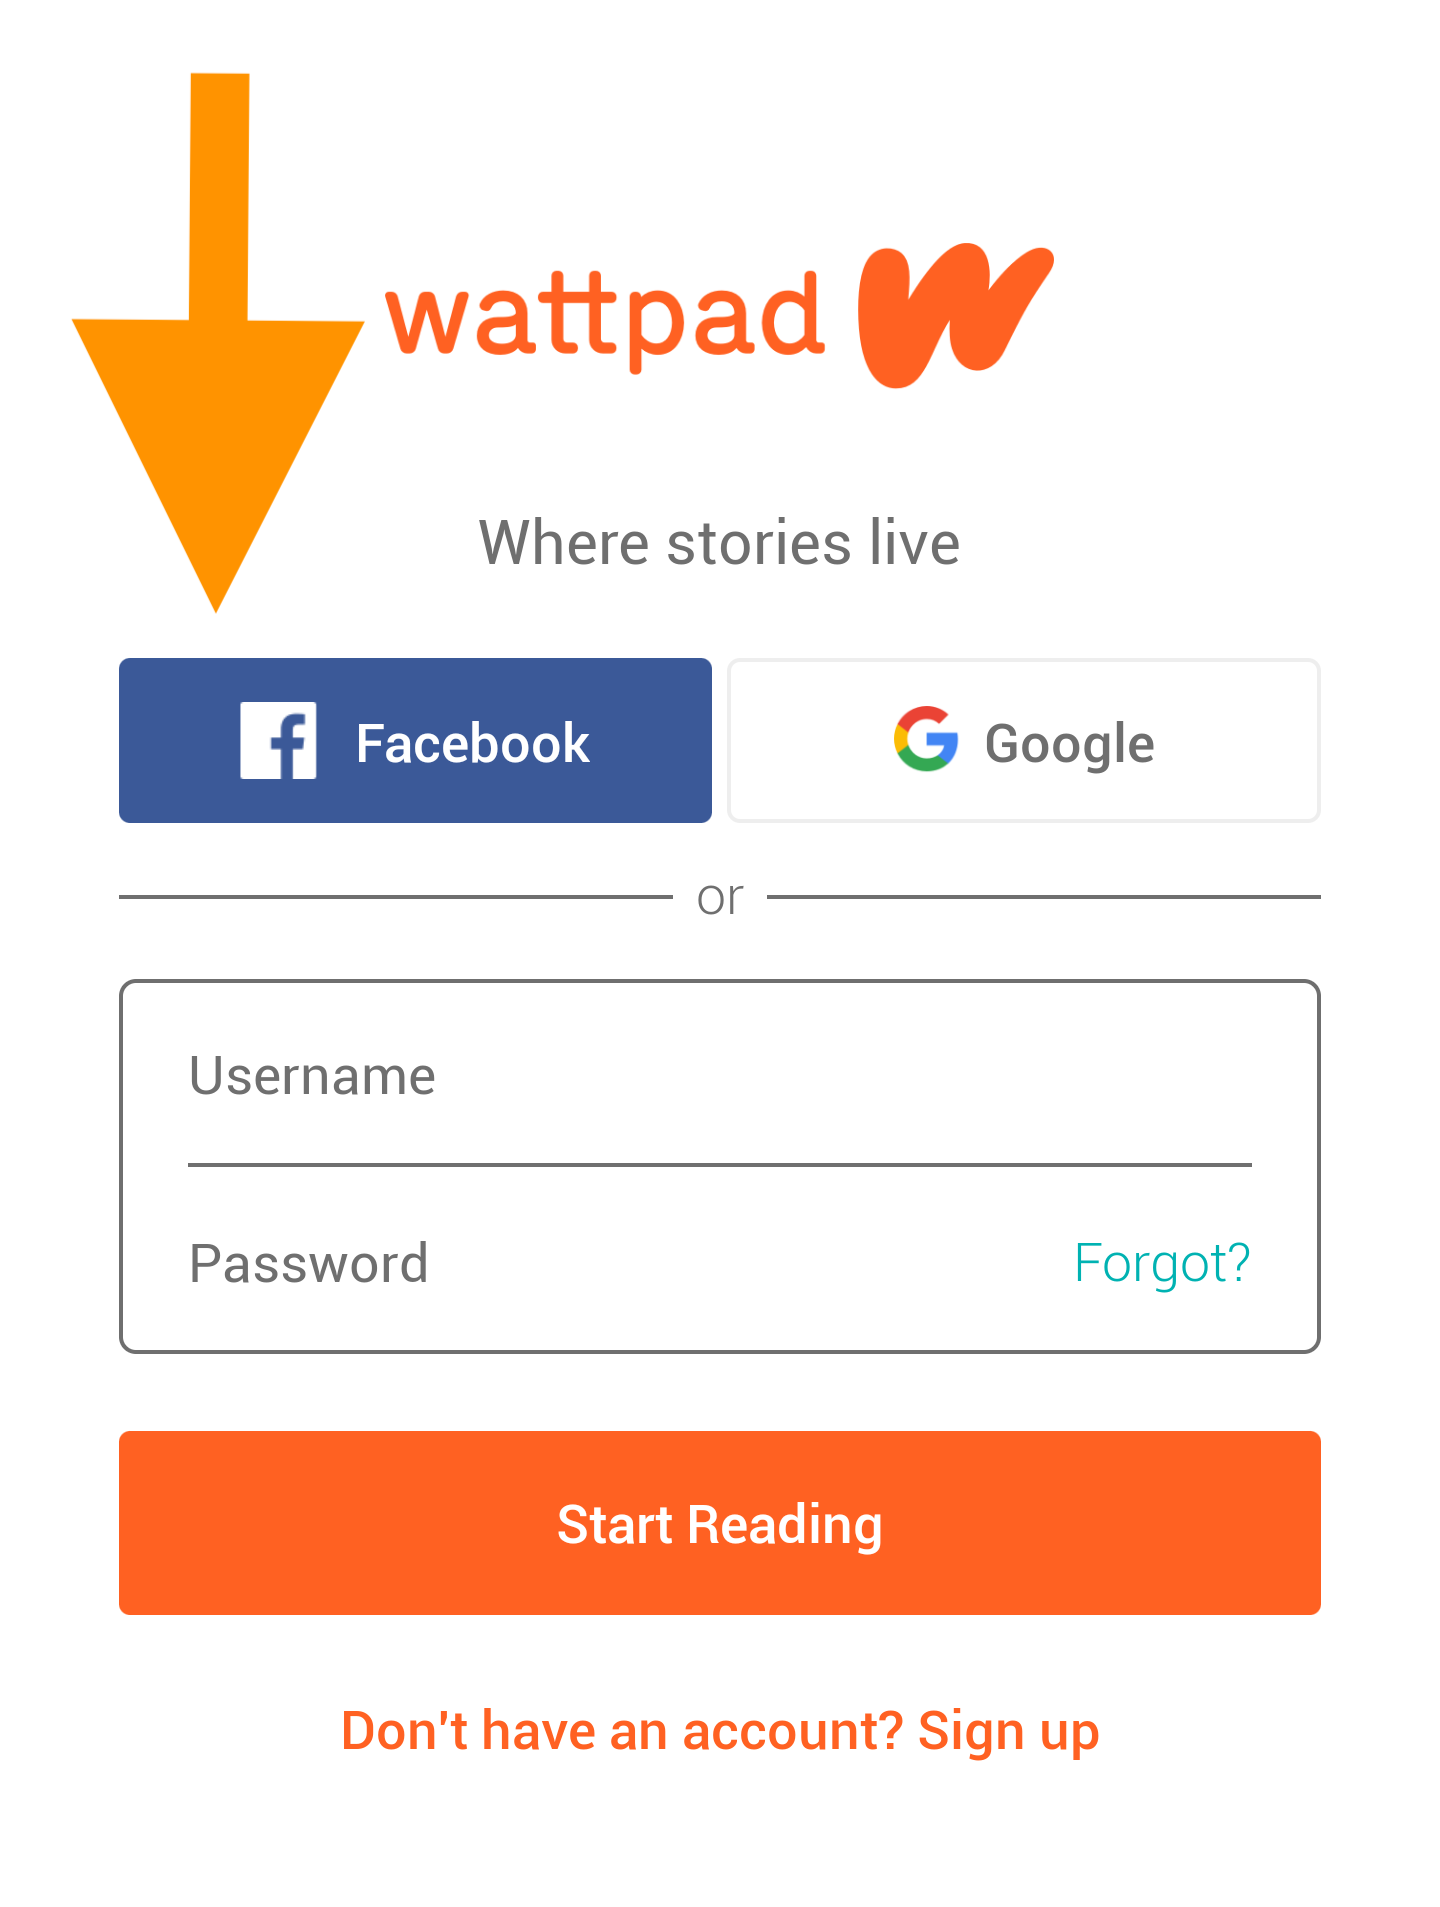 Screenshot of the Wattpad sign-up page with a large arrow pointing at the Facebook button. The button is located beneath the main logo and on the left of the Google button.